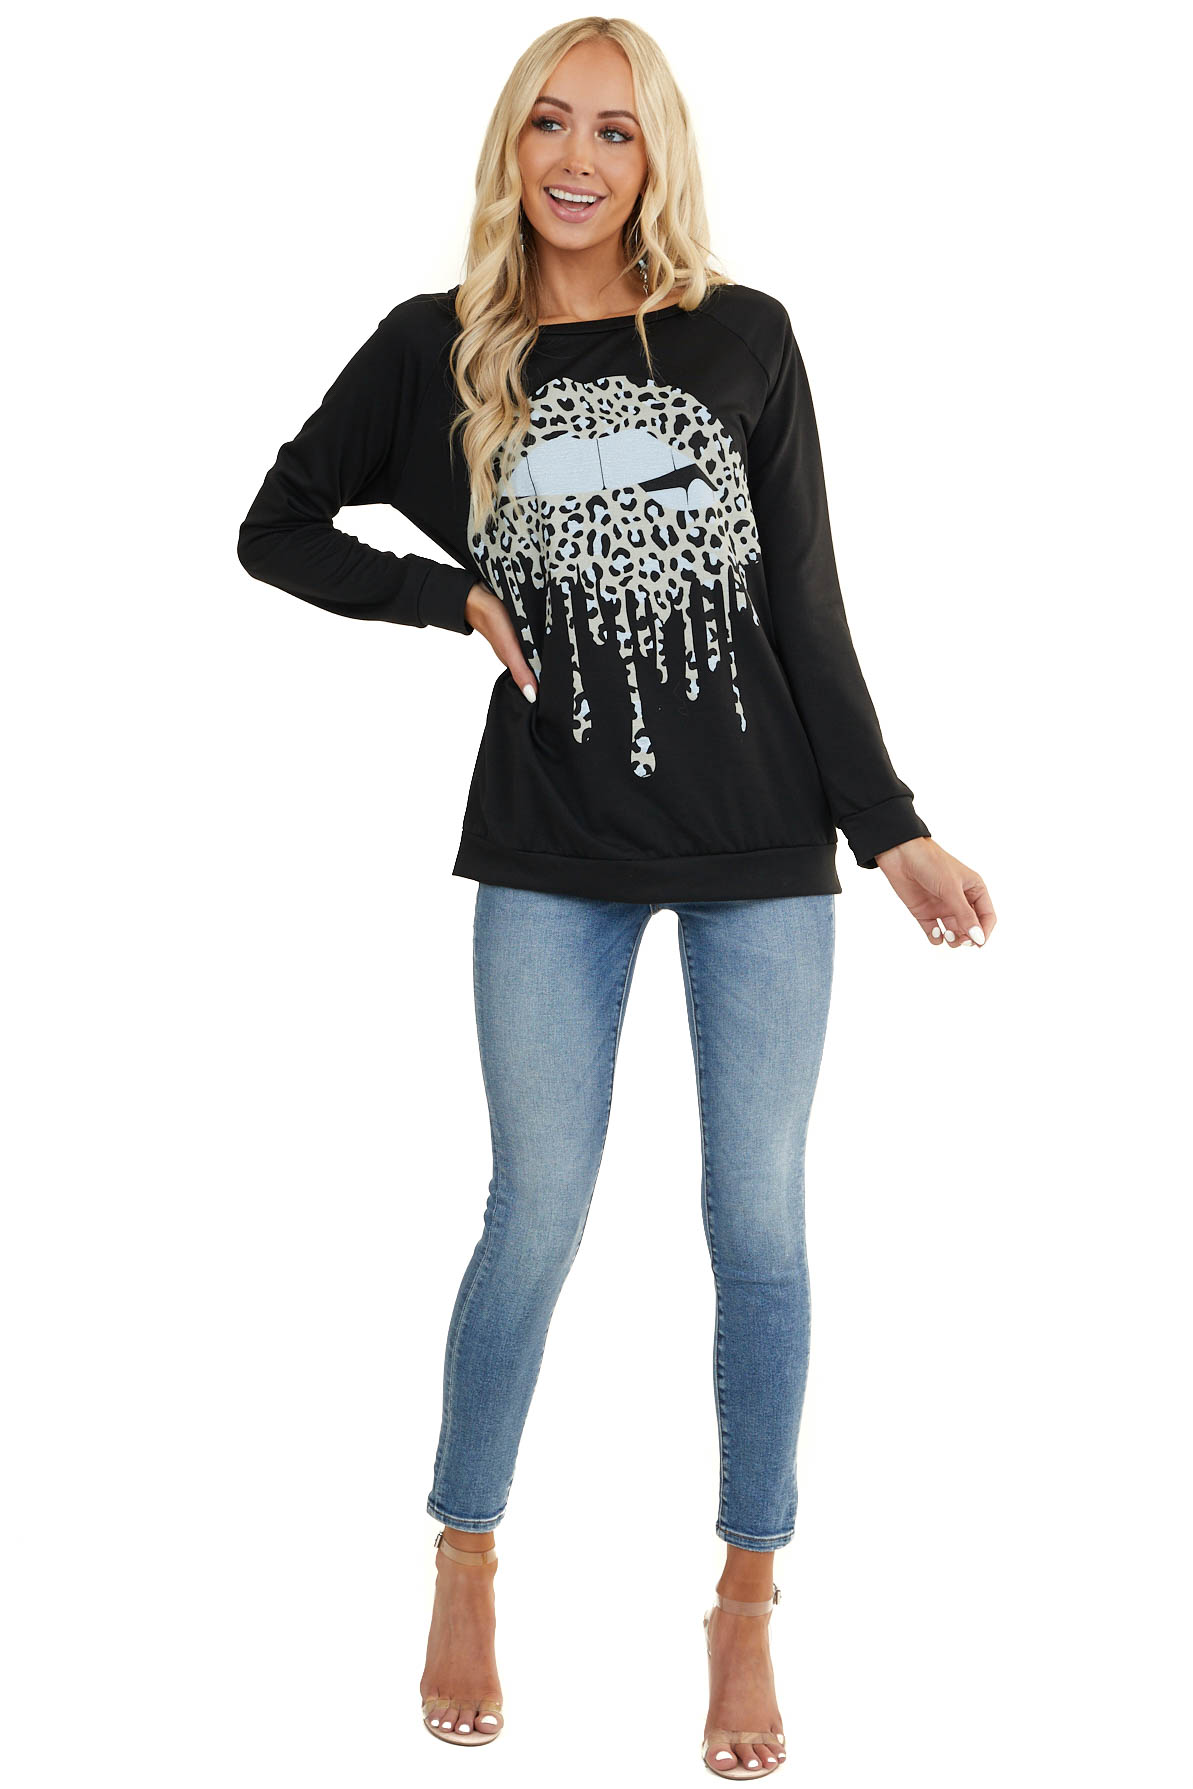 Black Long Sleeve Knit Top with Leopard Dripping Lip Graphic